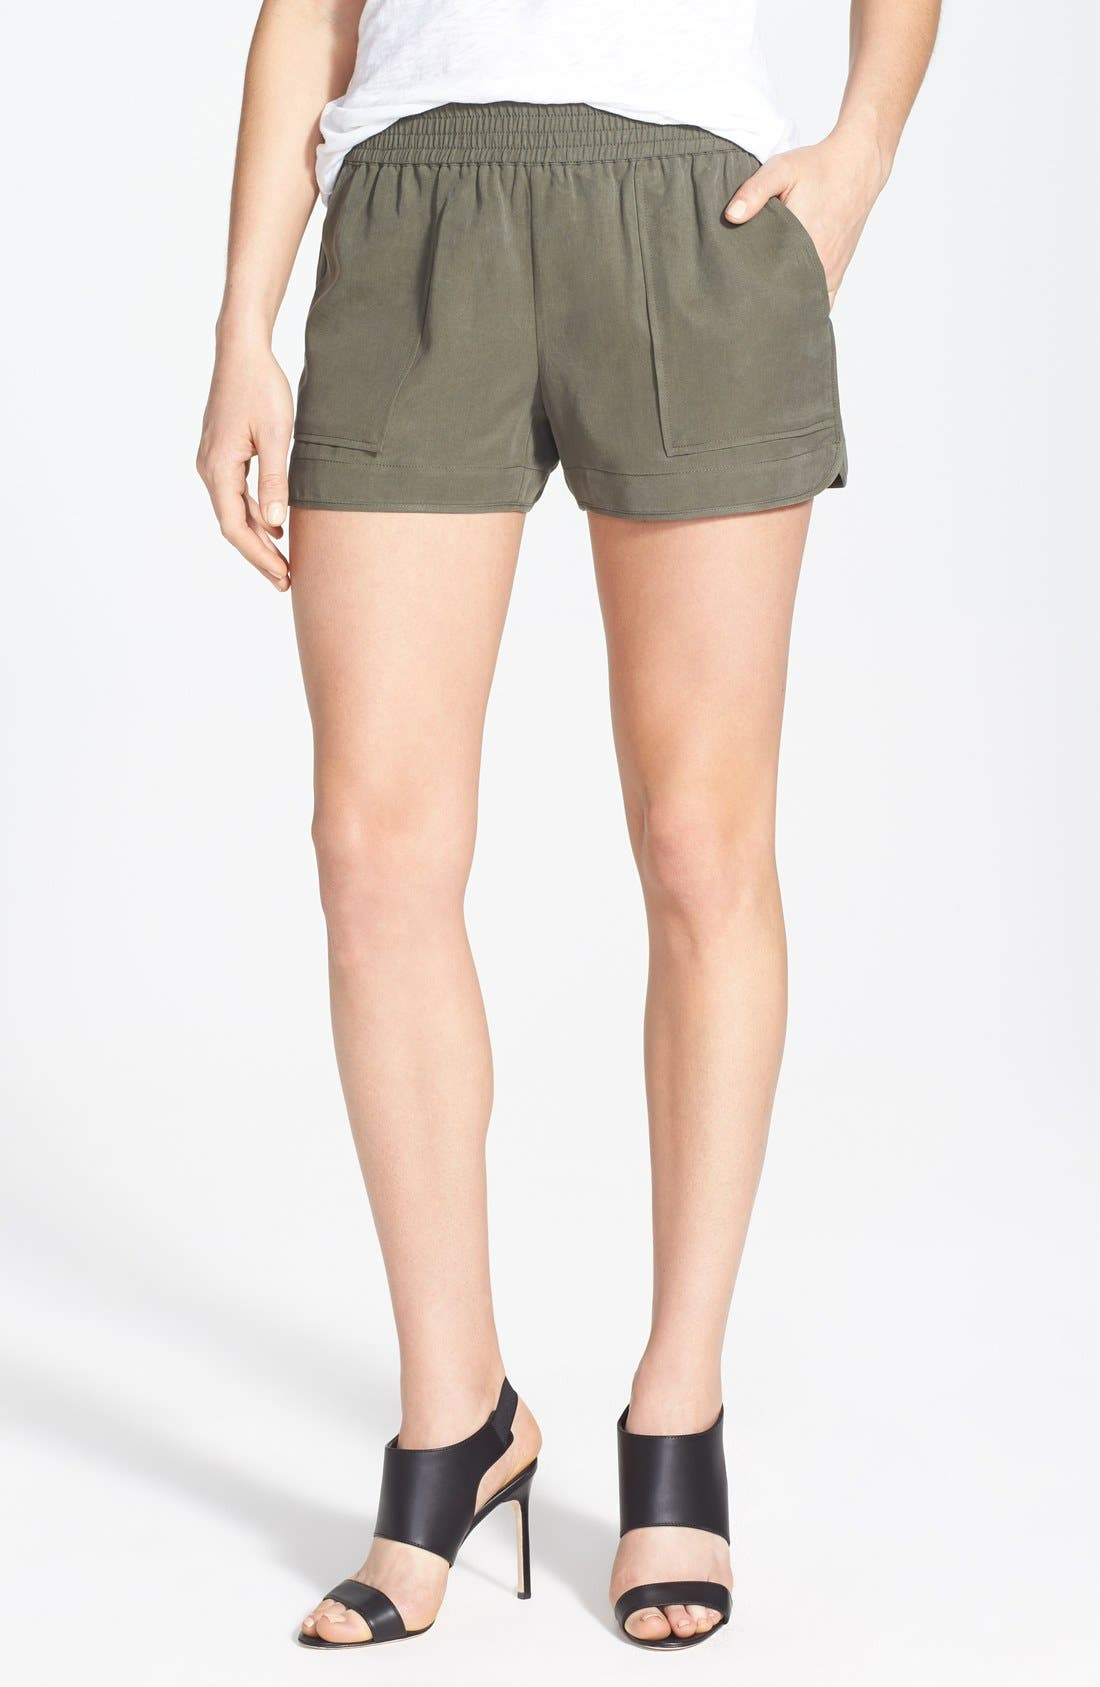 Beso Woven Shorts,                         Main,                         color, Fatigue